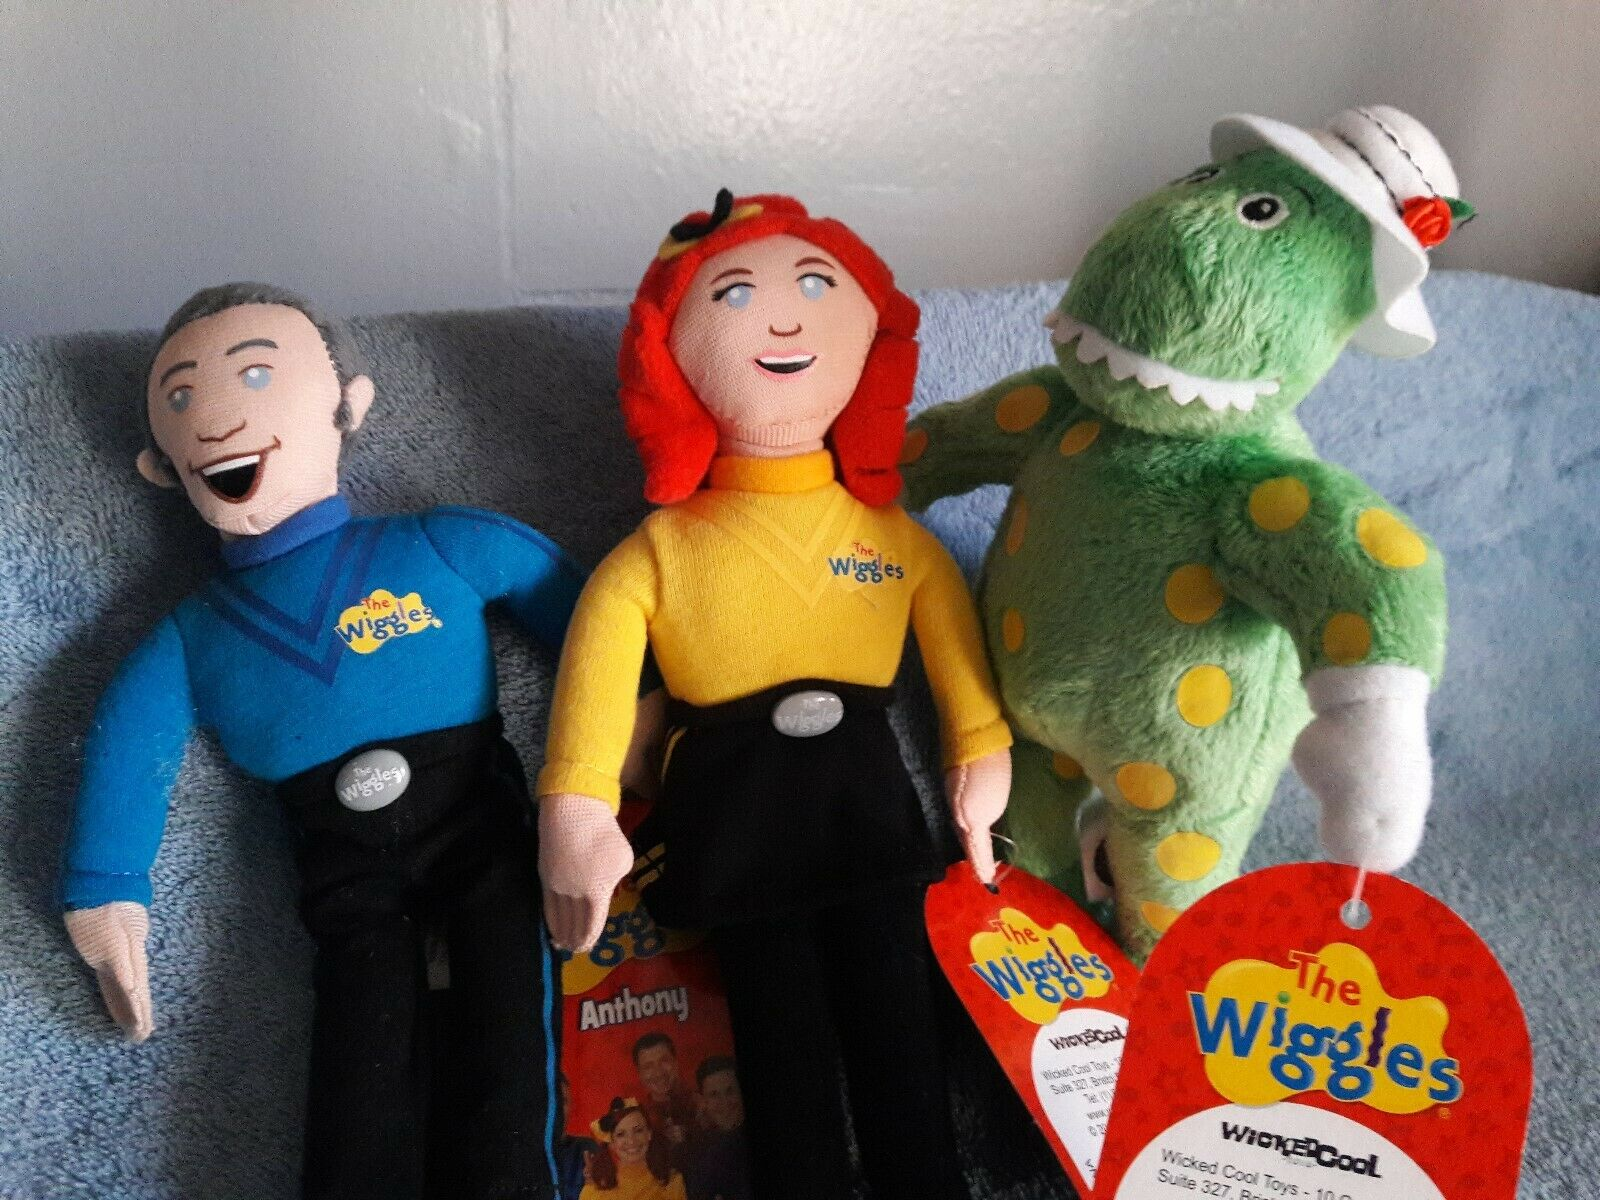 The Wiggles 2013 Wicked Cool Toys Lot New HTF